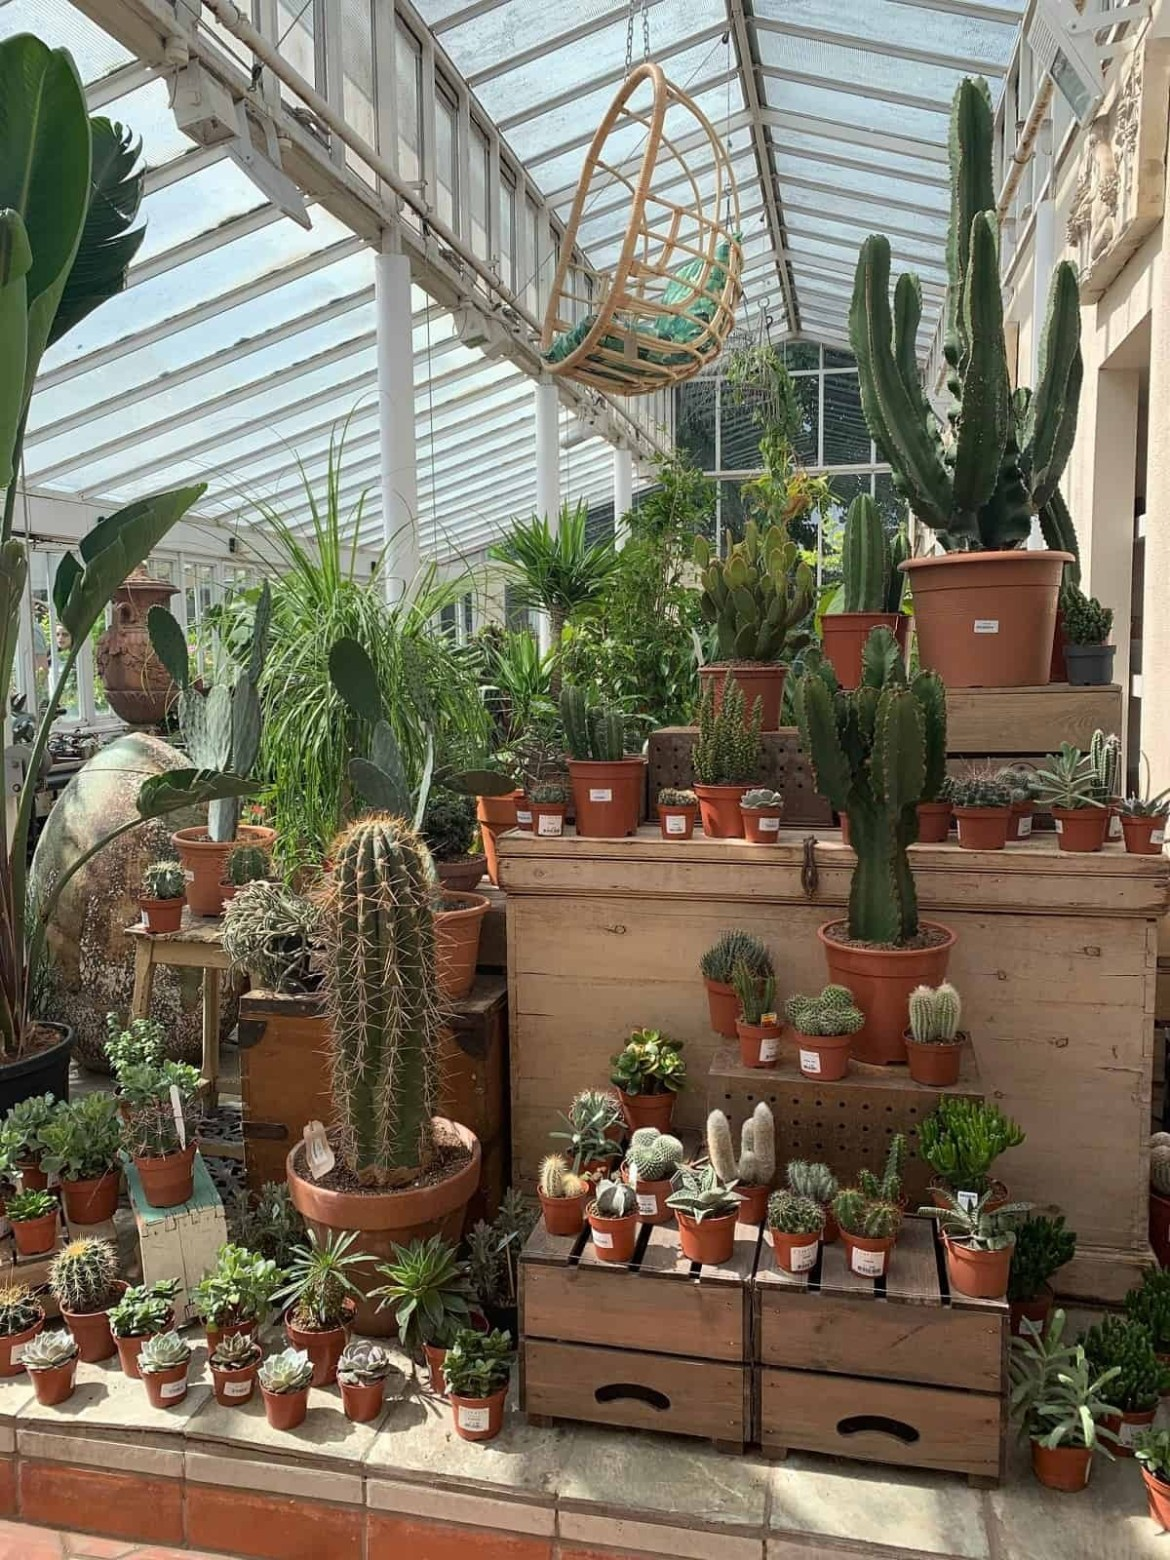 Clifton Nurseries in London